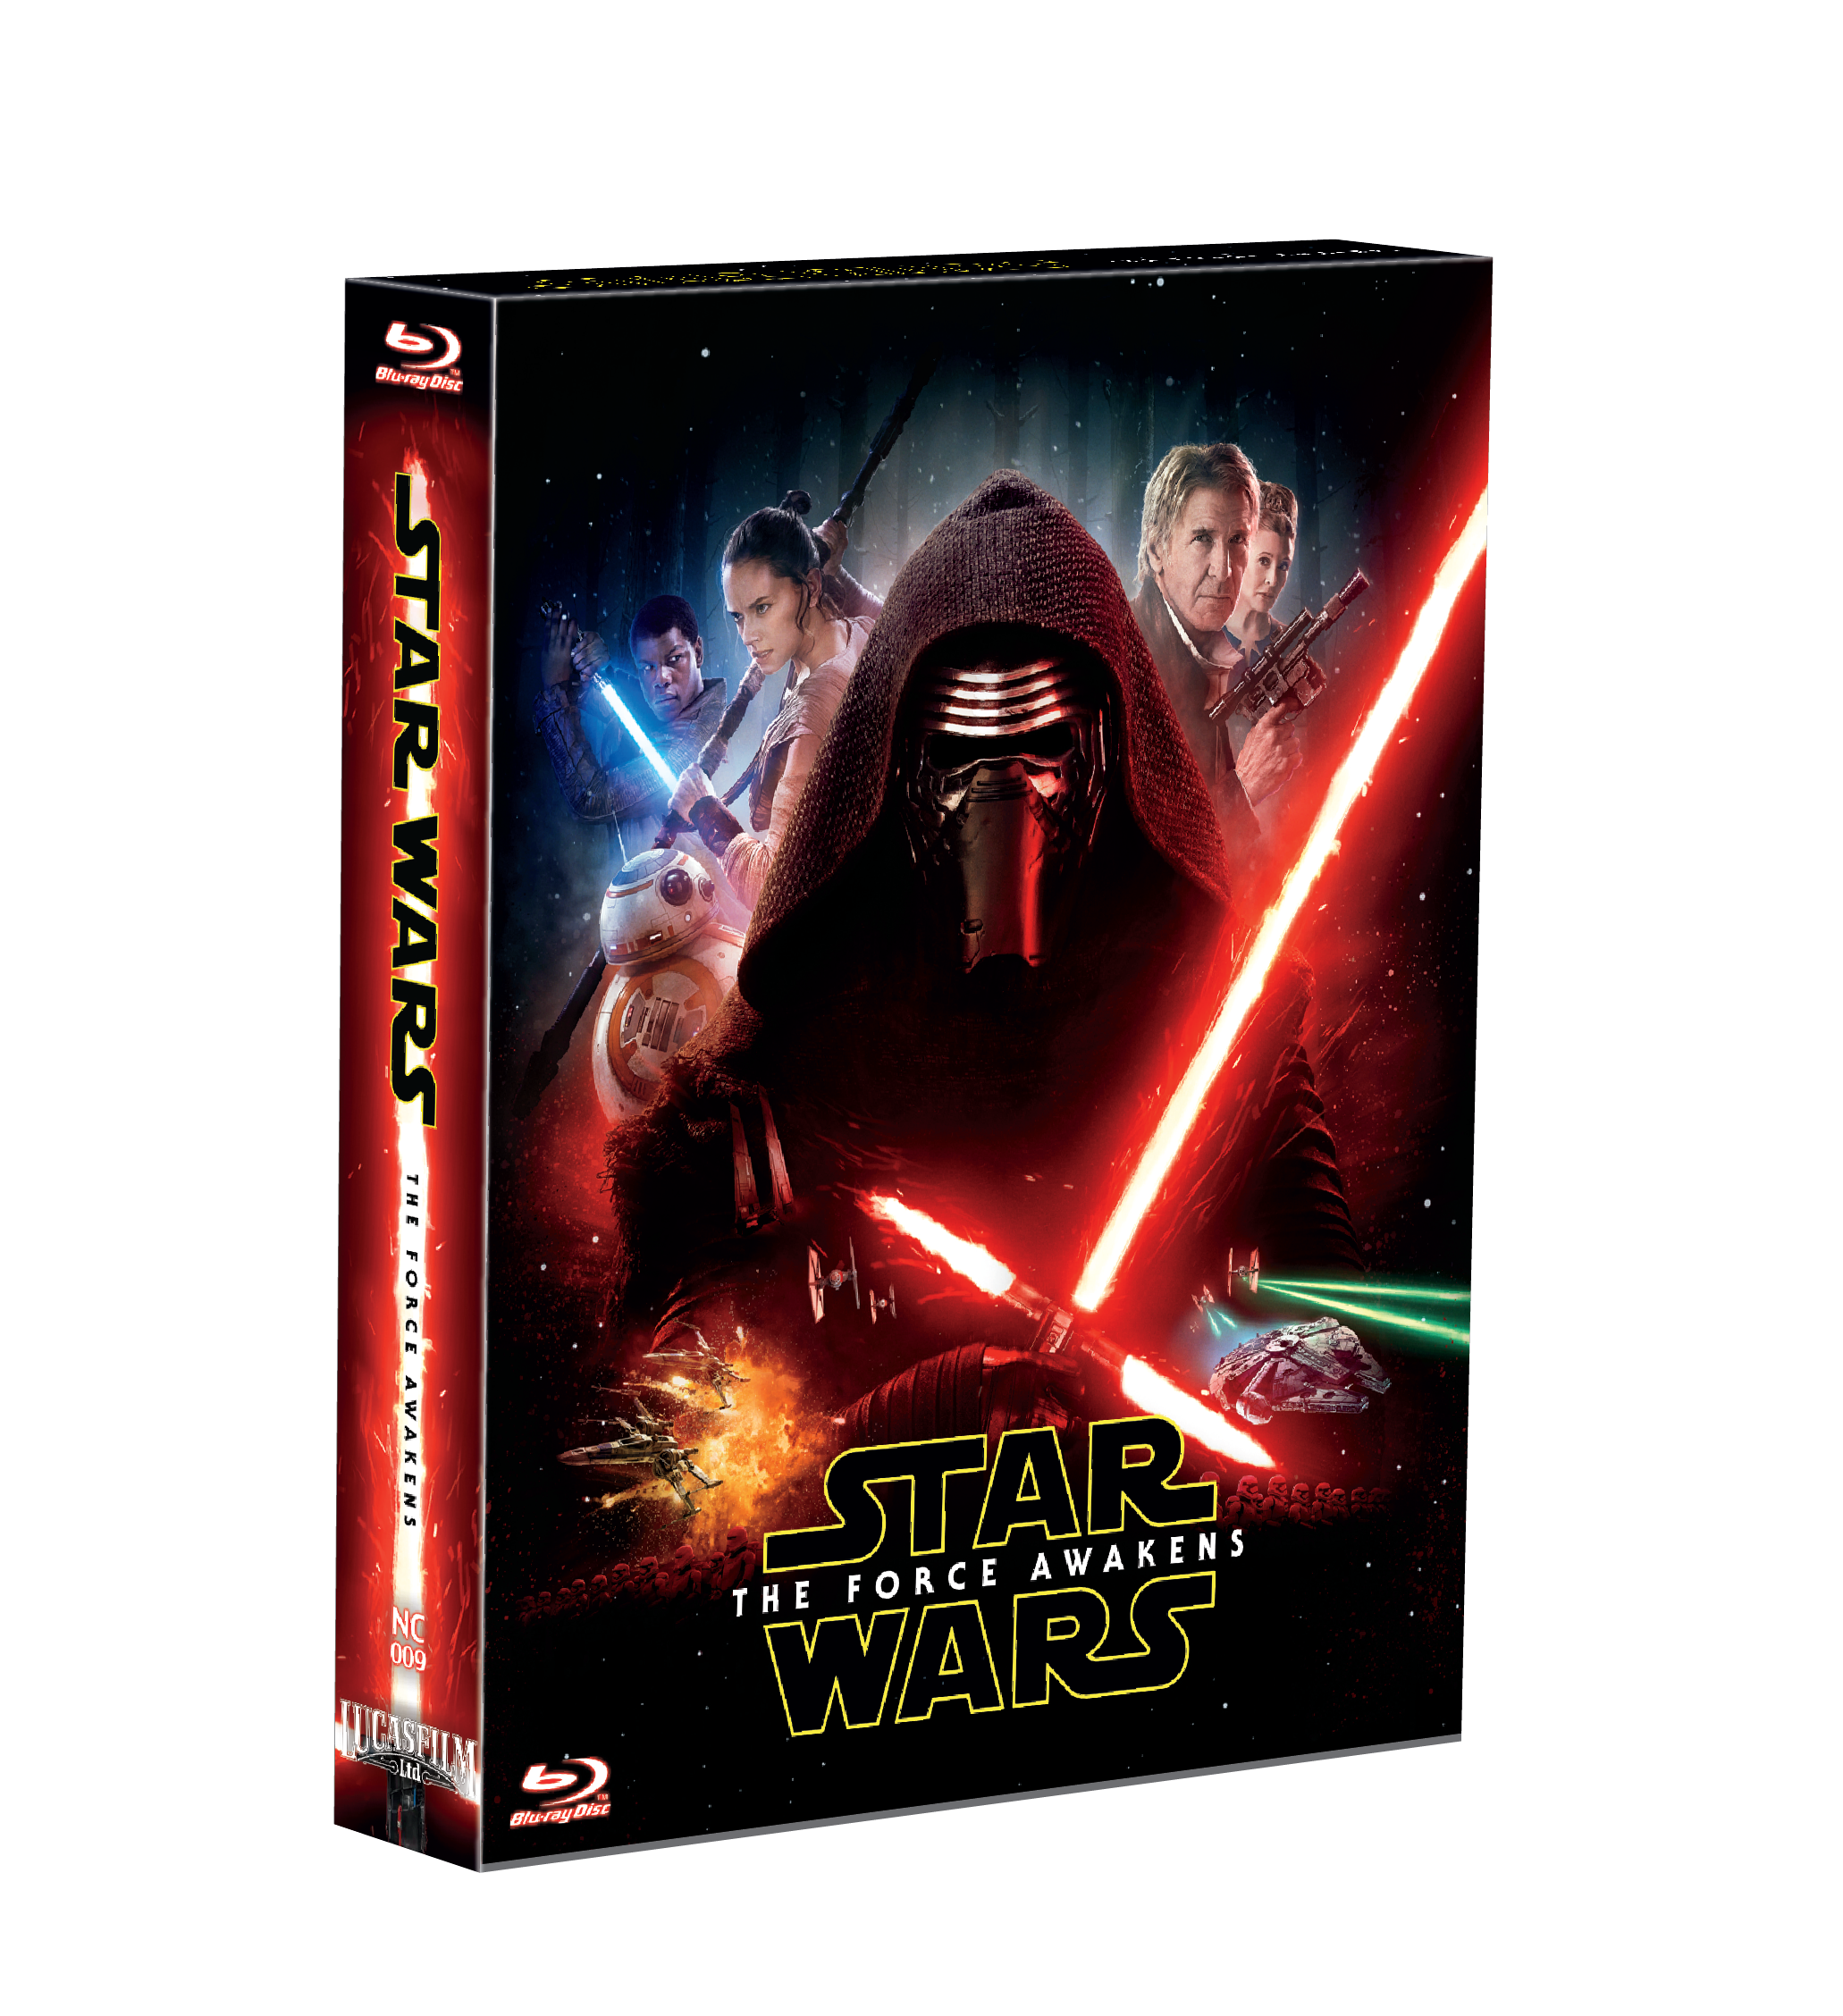 STAR WARS: EPISODE VII - THE FORCE AWAKENS STEELBOOK FULL SLIP-A(LIMITED 200 COPIES) NC#9